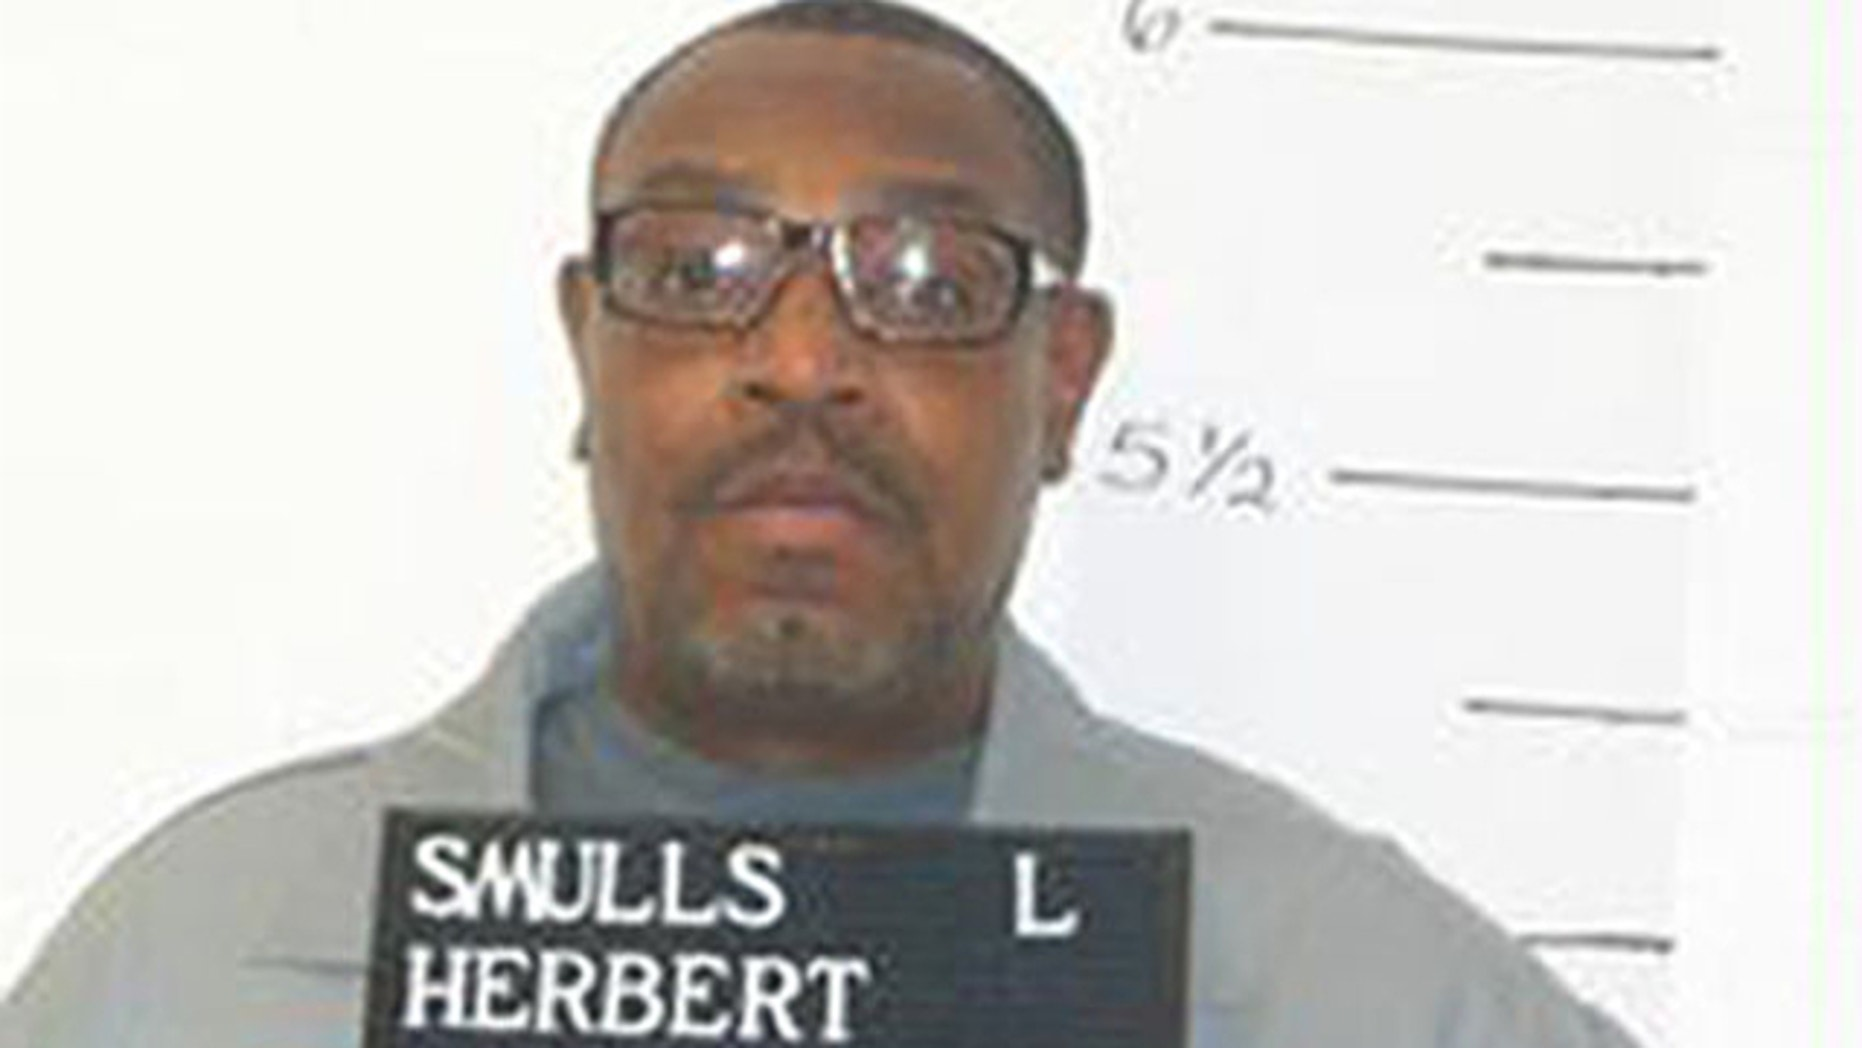 FILE: Dec. 13, 2011: This photo released by the Missouri Department of Corrections shows death-row inmate Herbert Smulls who was sentenced to death for killing St. Louis County jeweler Stephen Honickman in 1991.